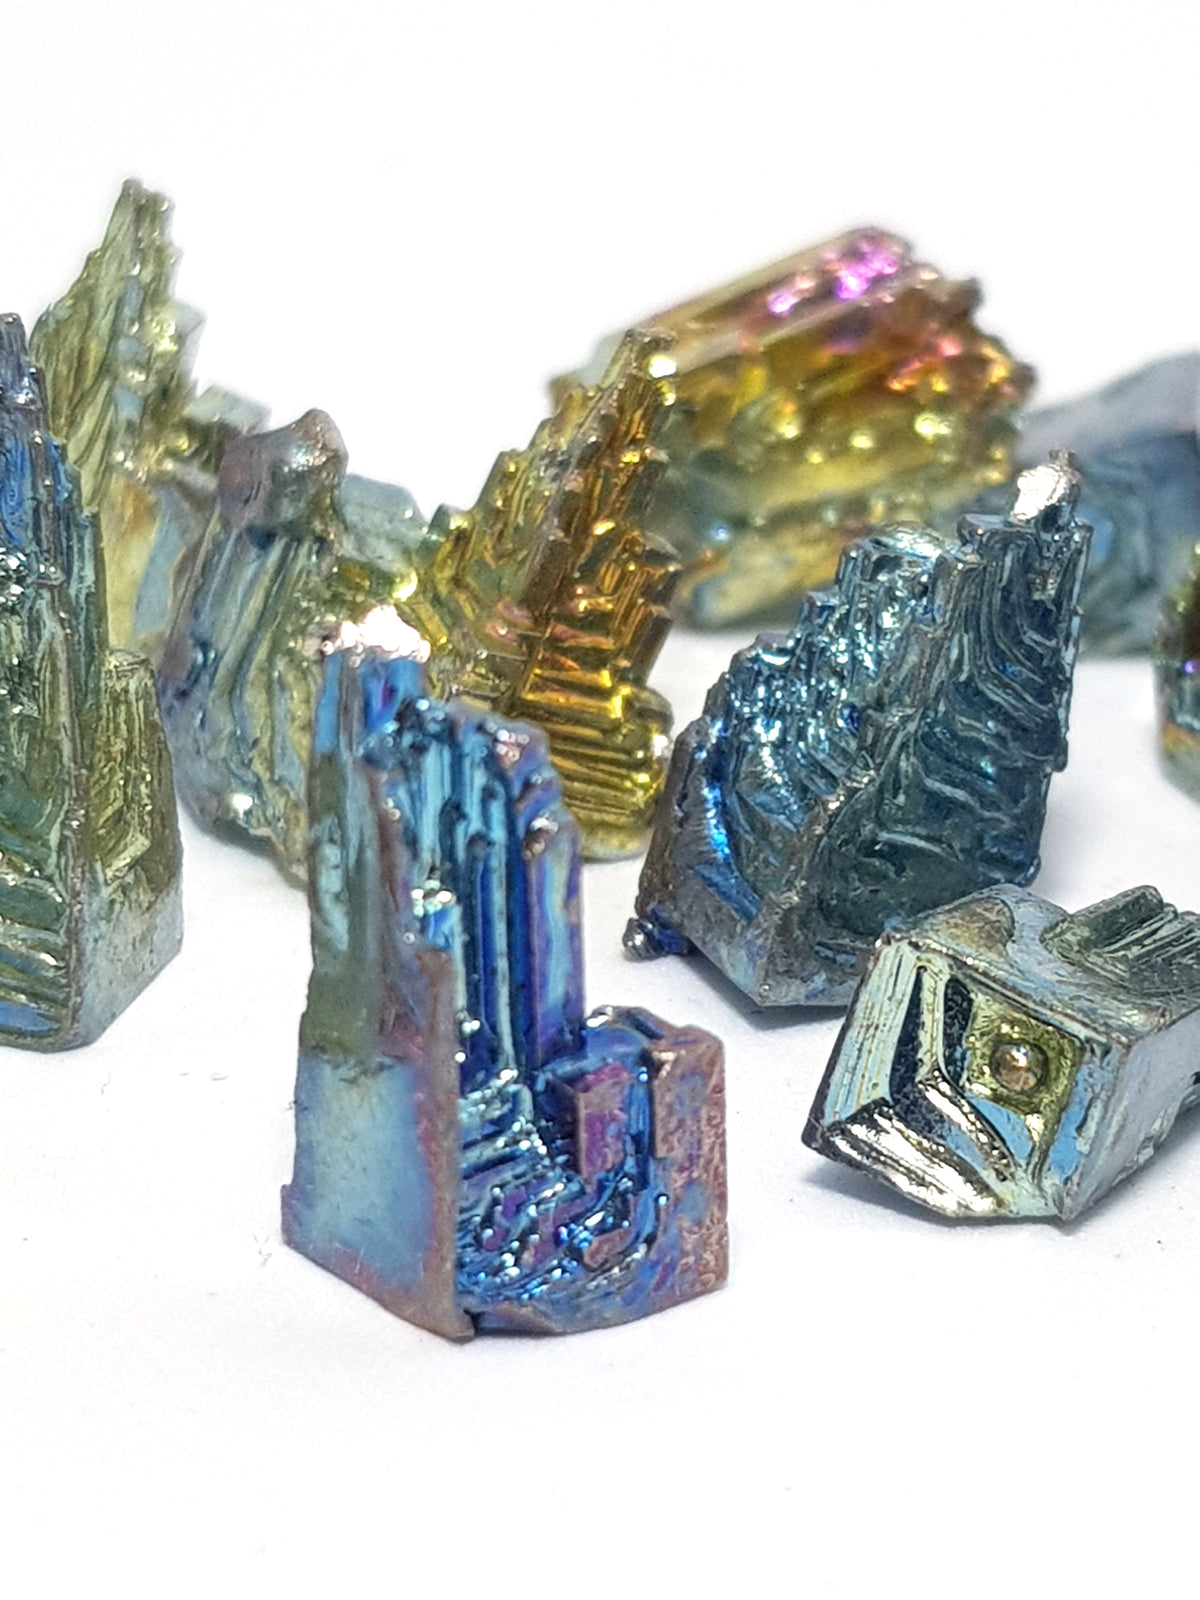 Mini Bismuth Crystals - The Science of Magic